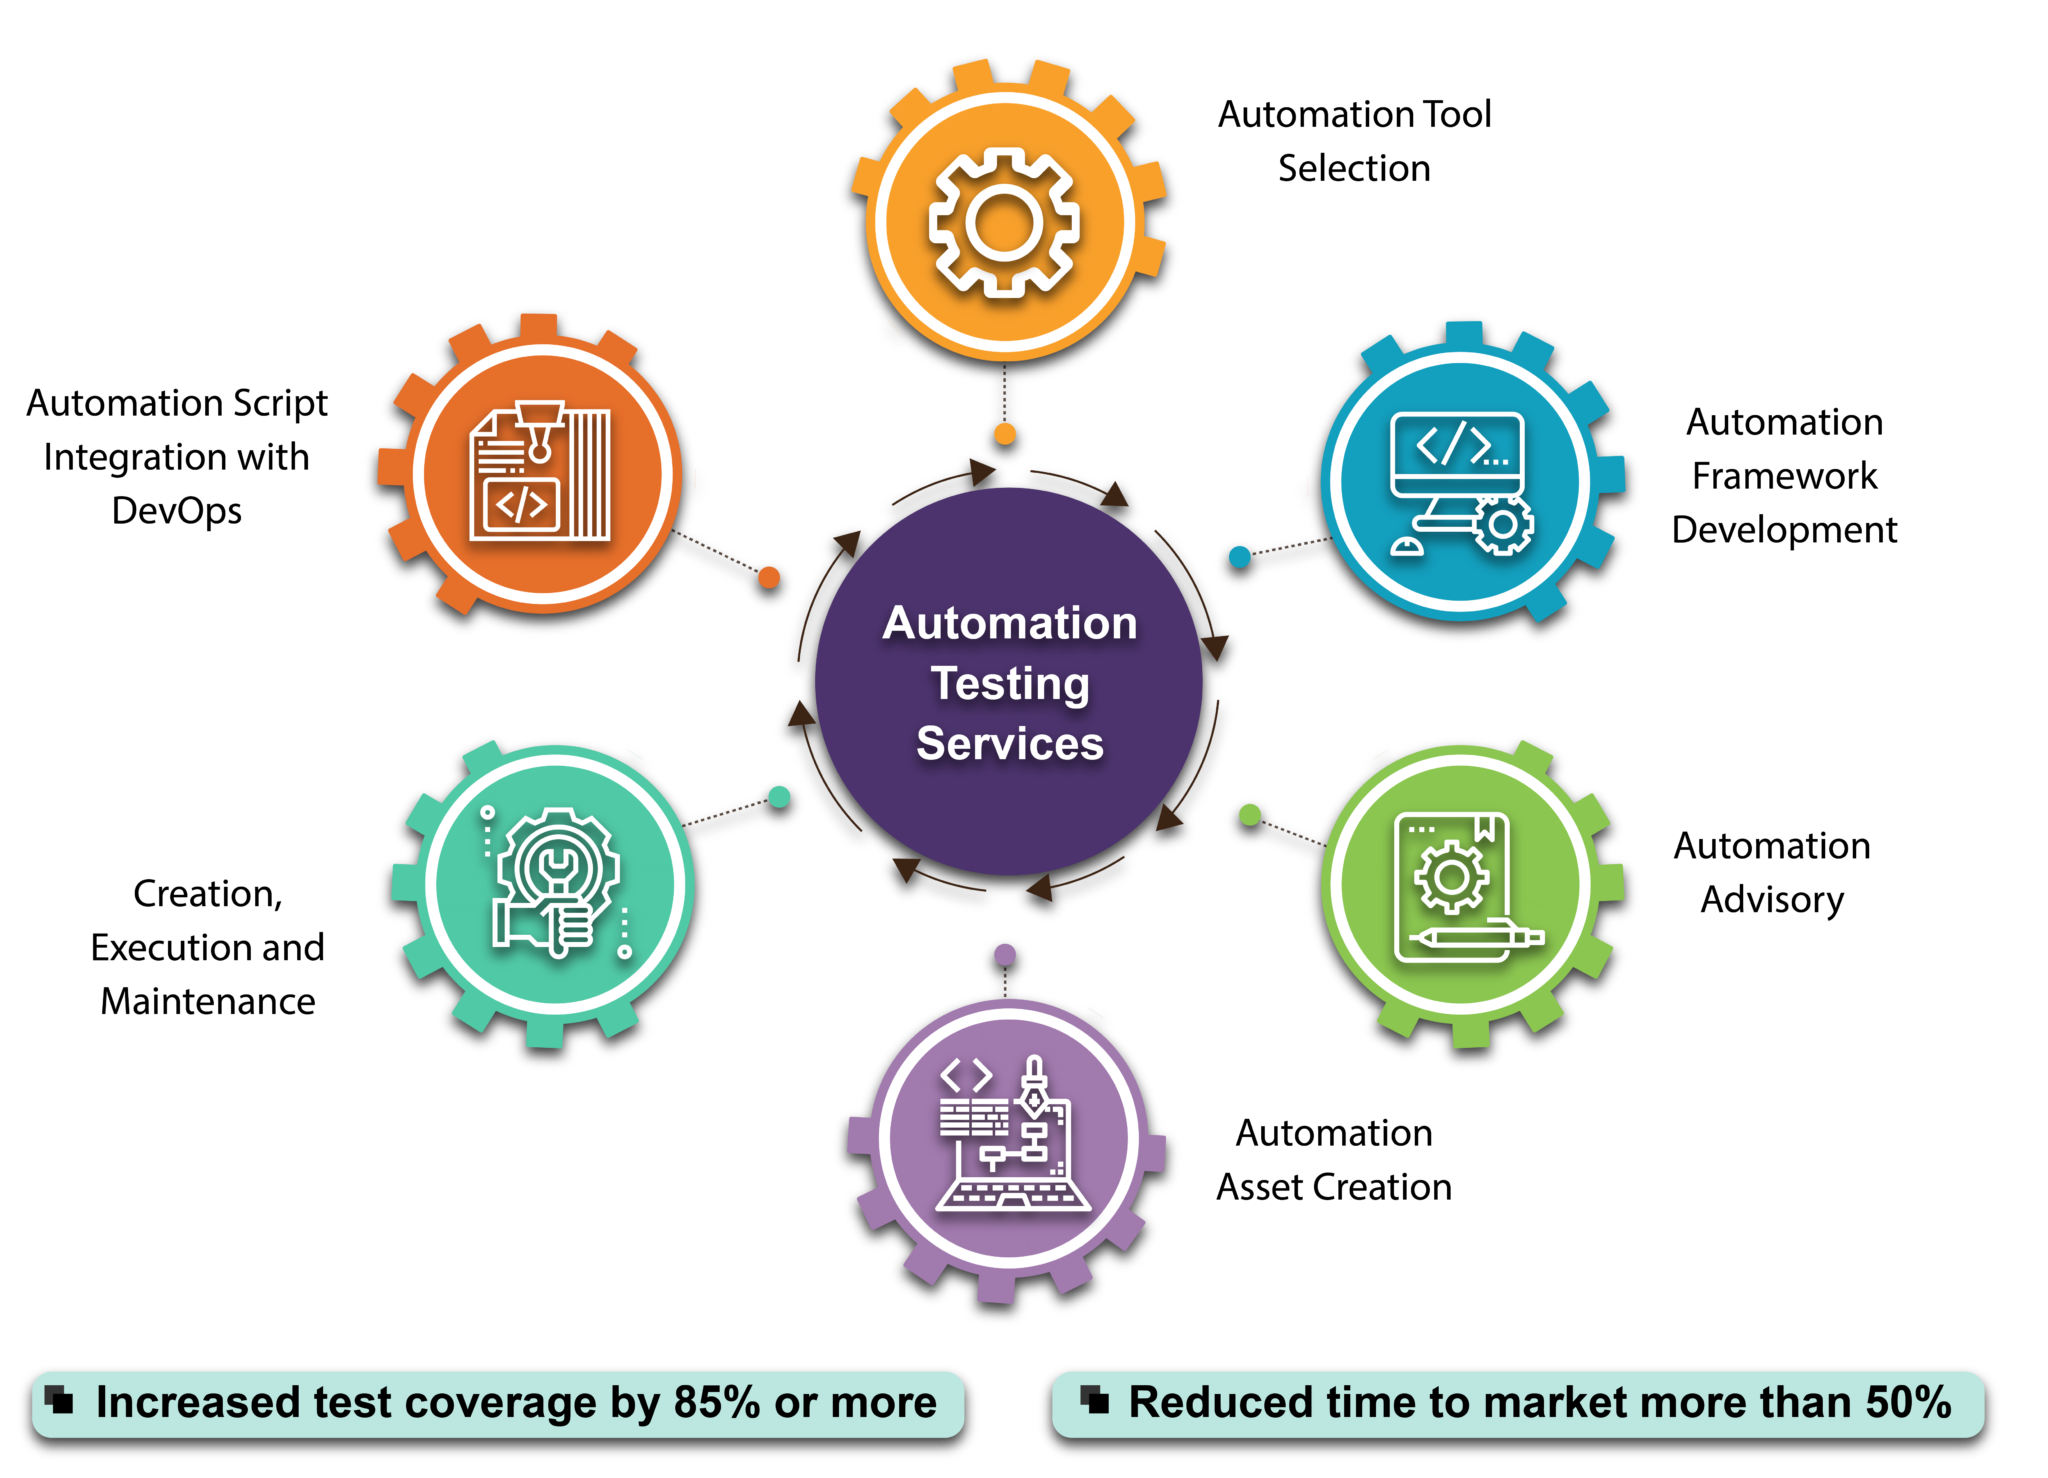 Know top 6 automation testing services